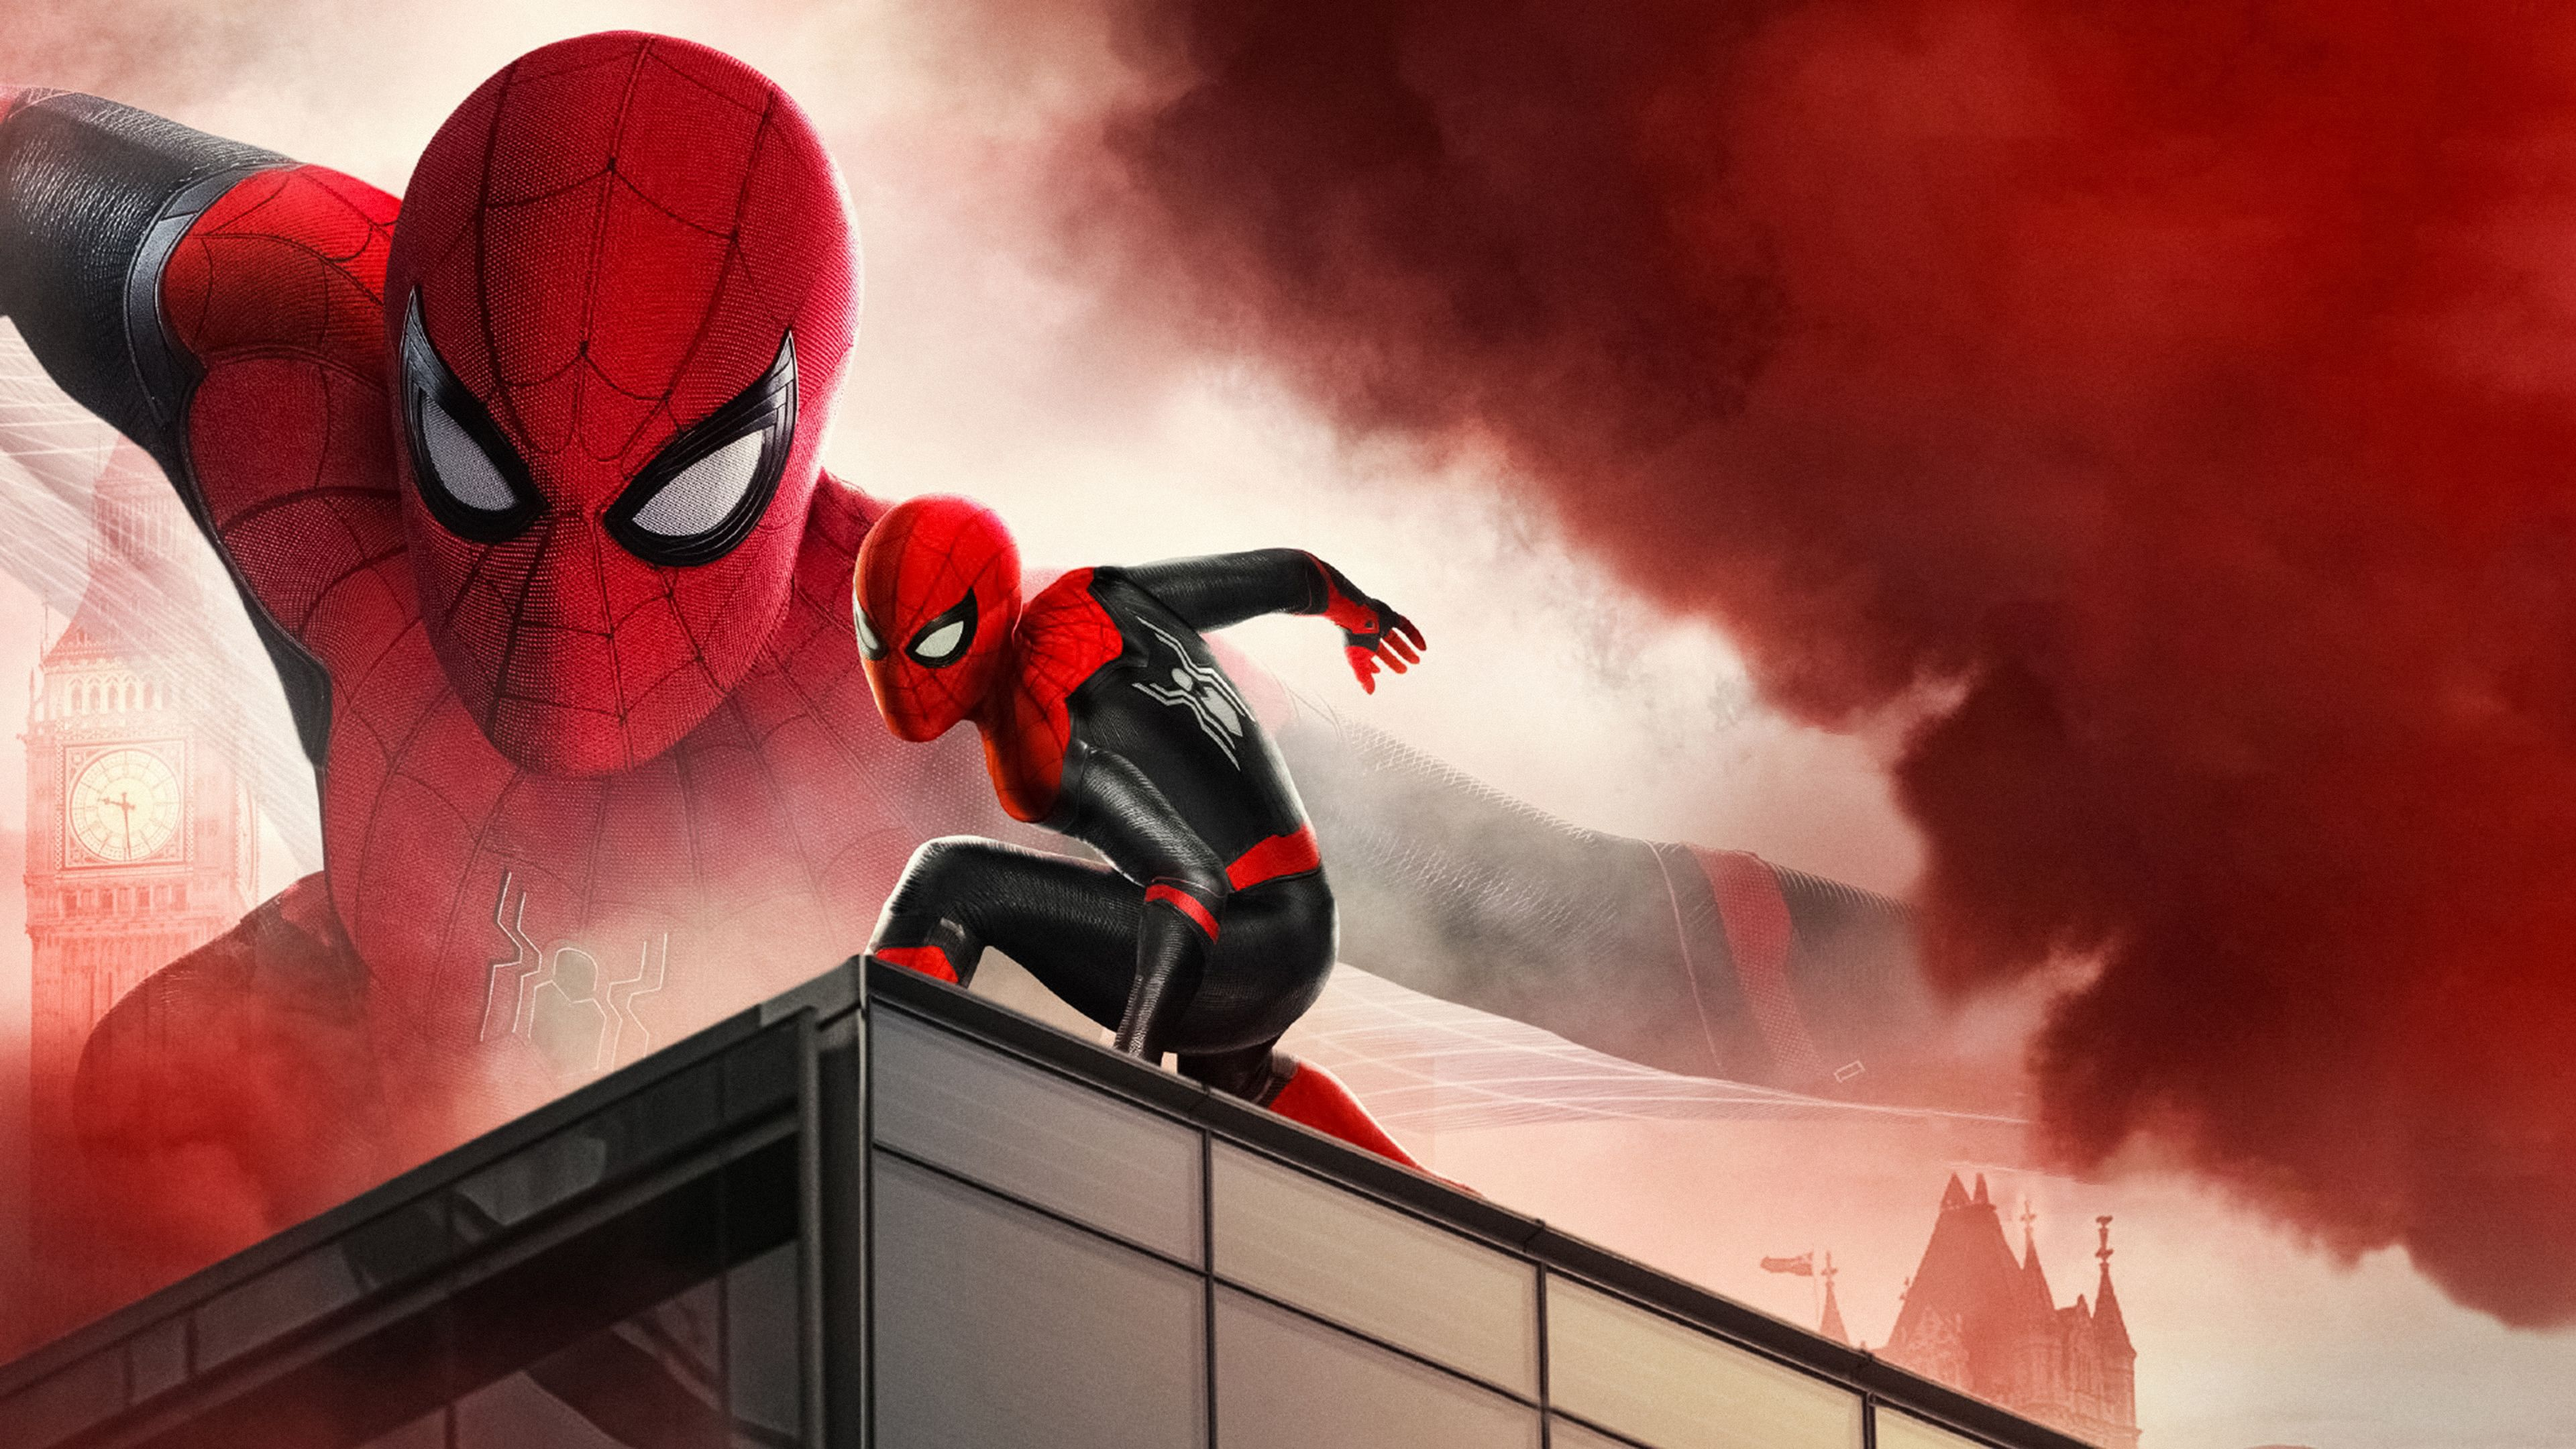 Spider Man Far Fromhome Tom Holland Wallpapers Superheroes Wallpapers Spiderman Wallpapers Spiderman Far From In 2020 Spiderman Superhero Wallpaper Movie Wallpapers